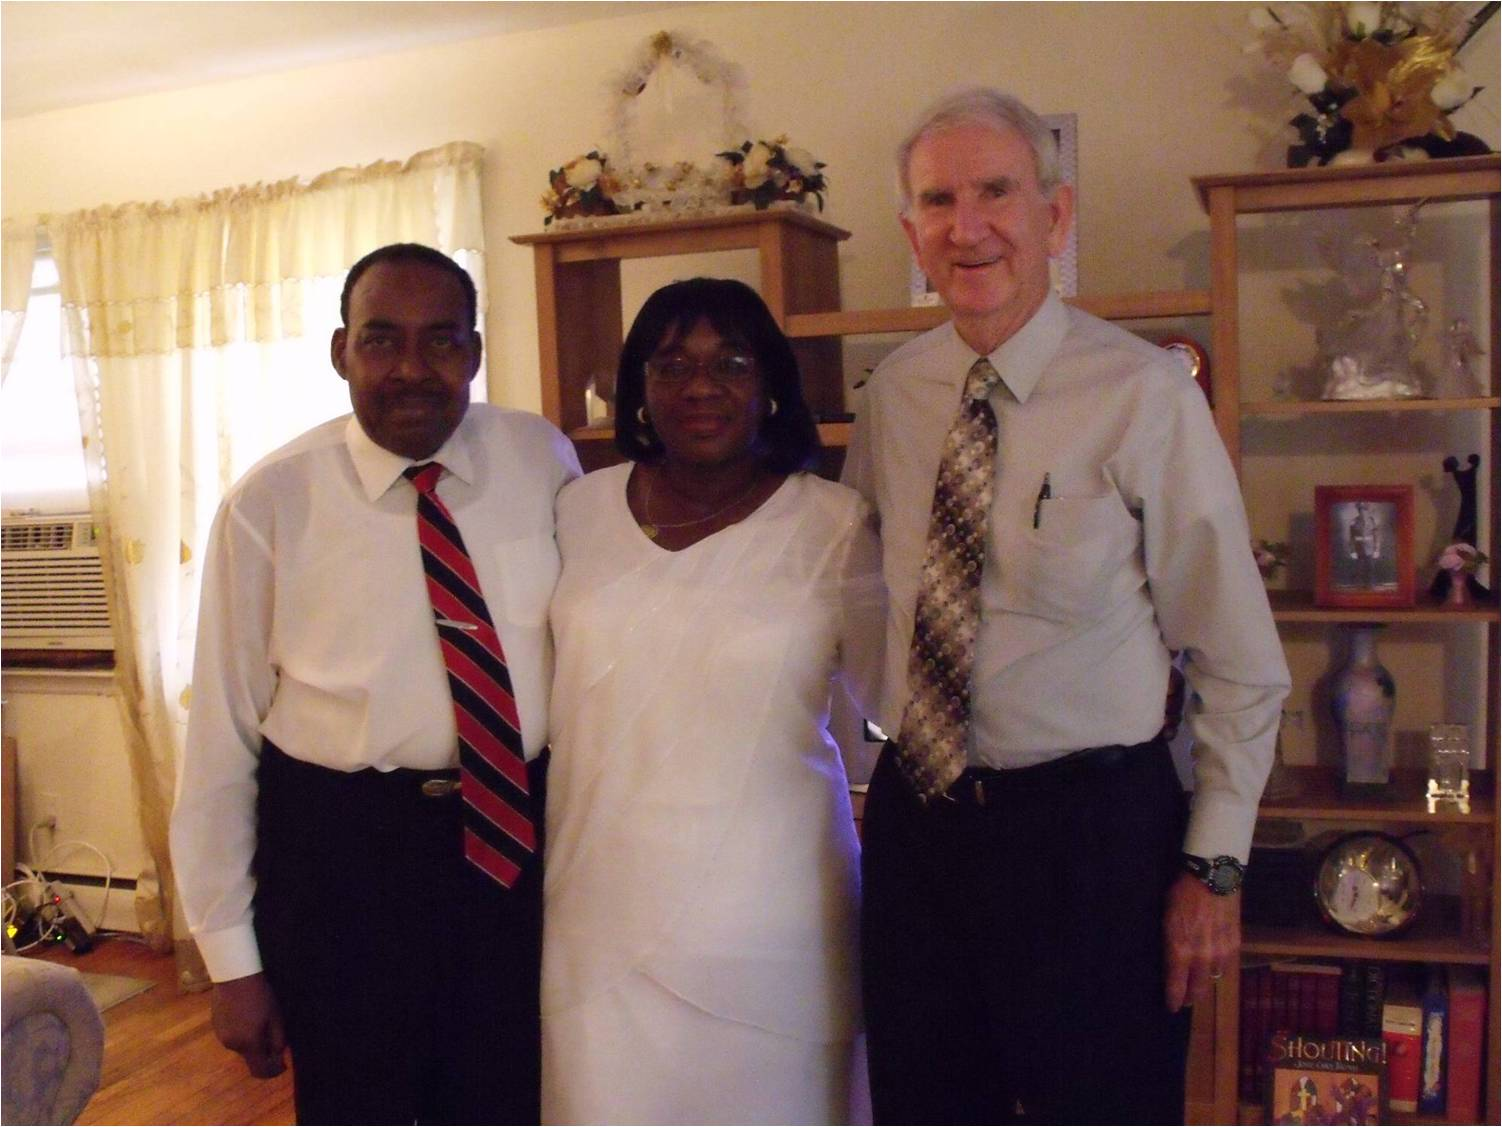 Bishop Maurice Robert & his wife, Susan